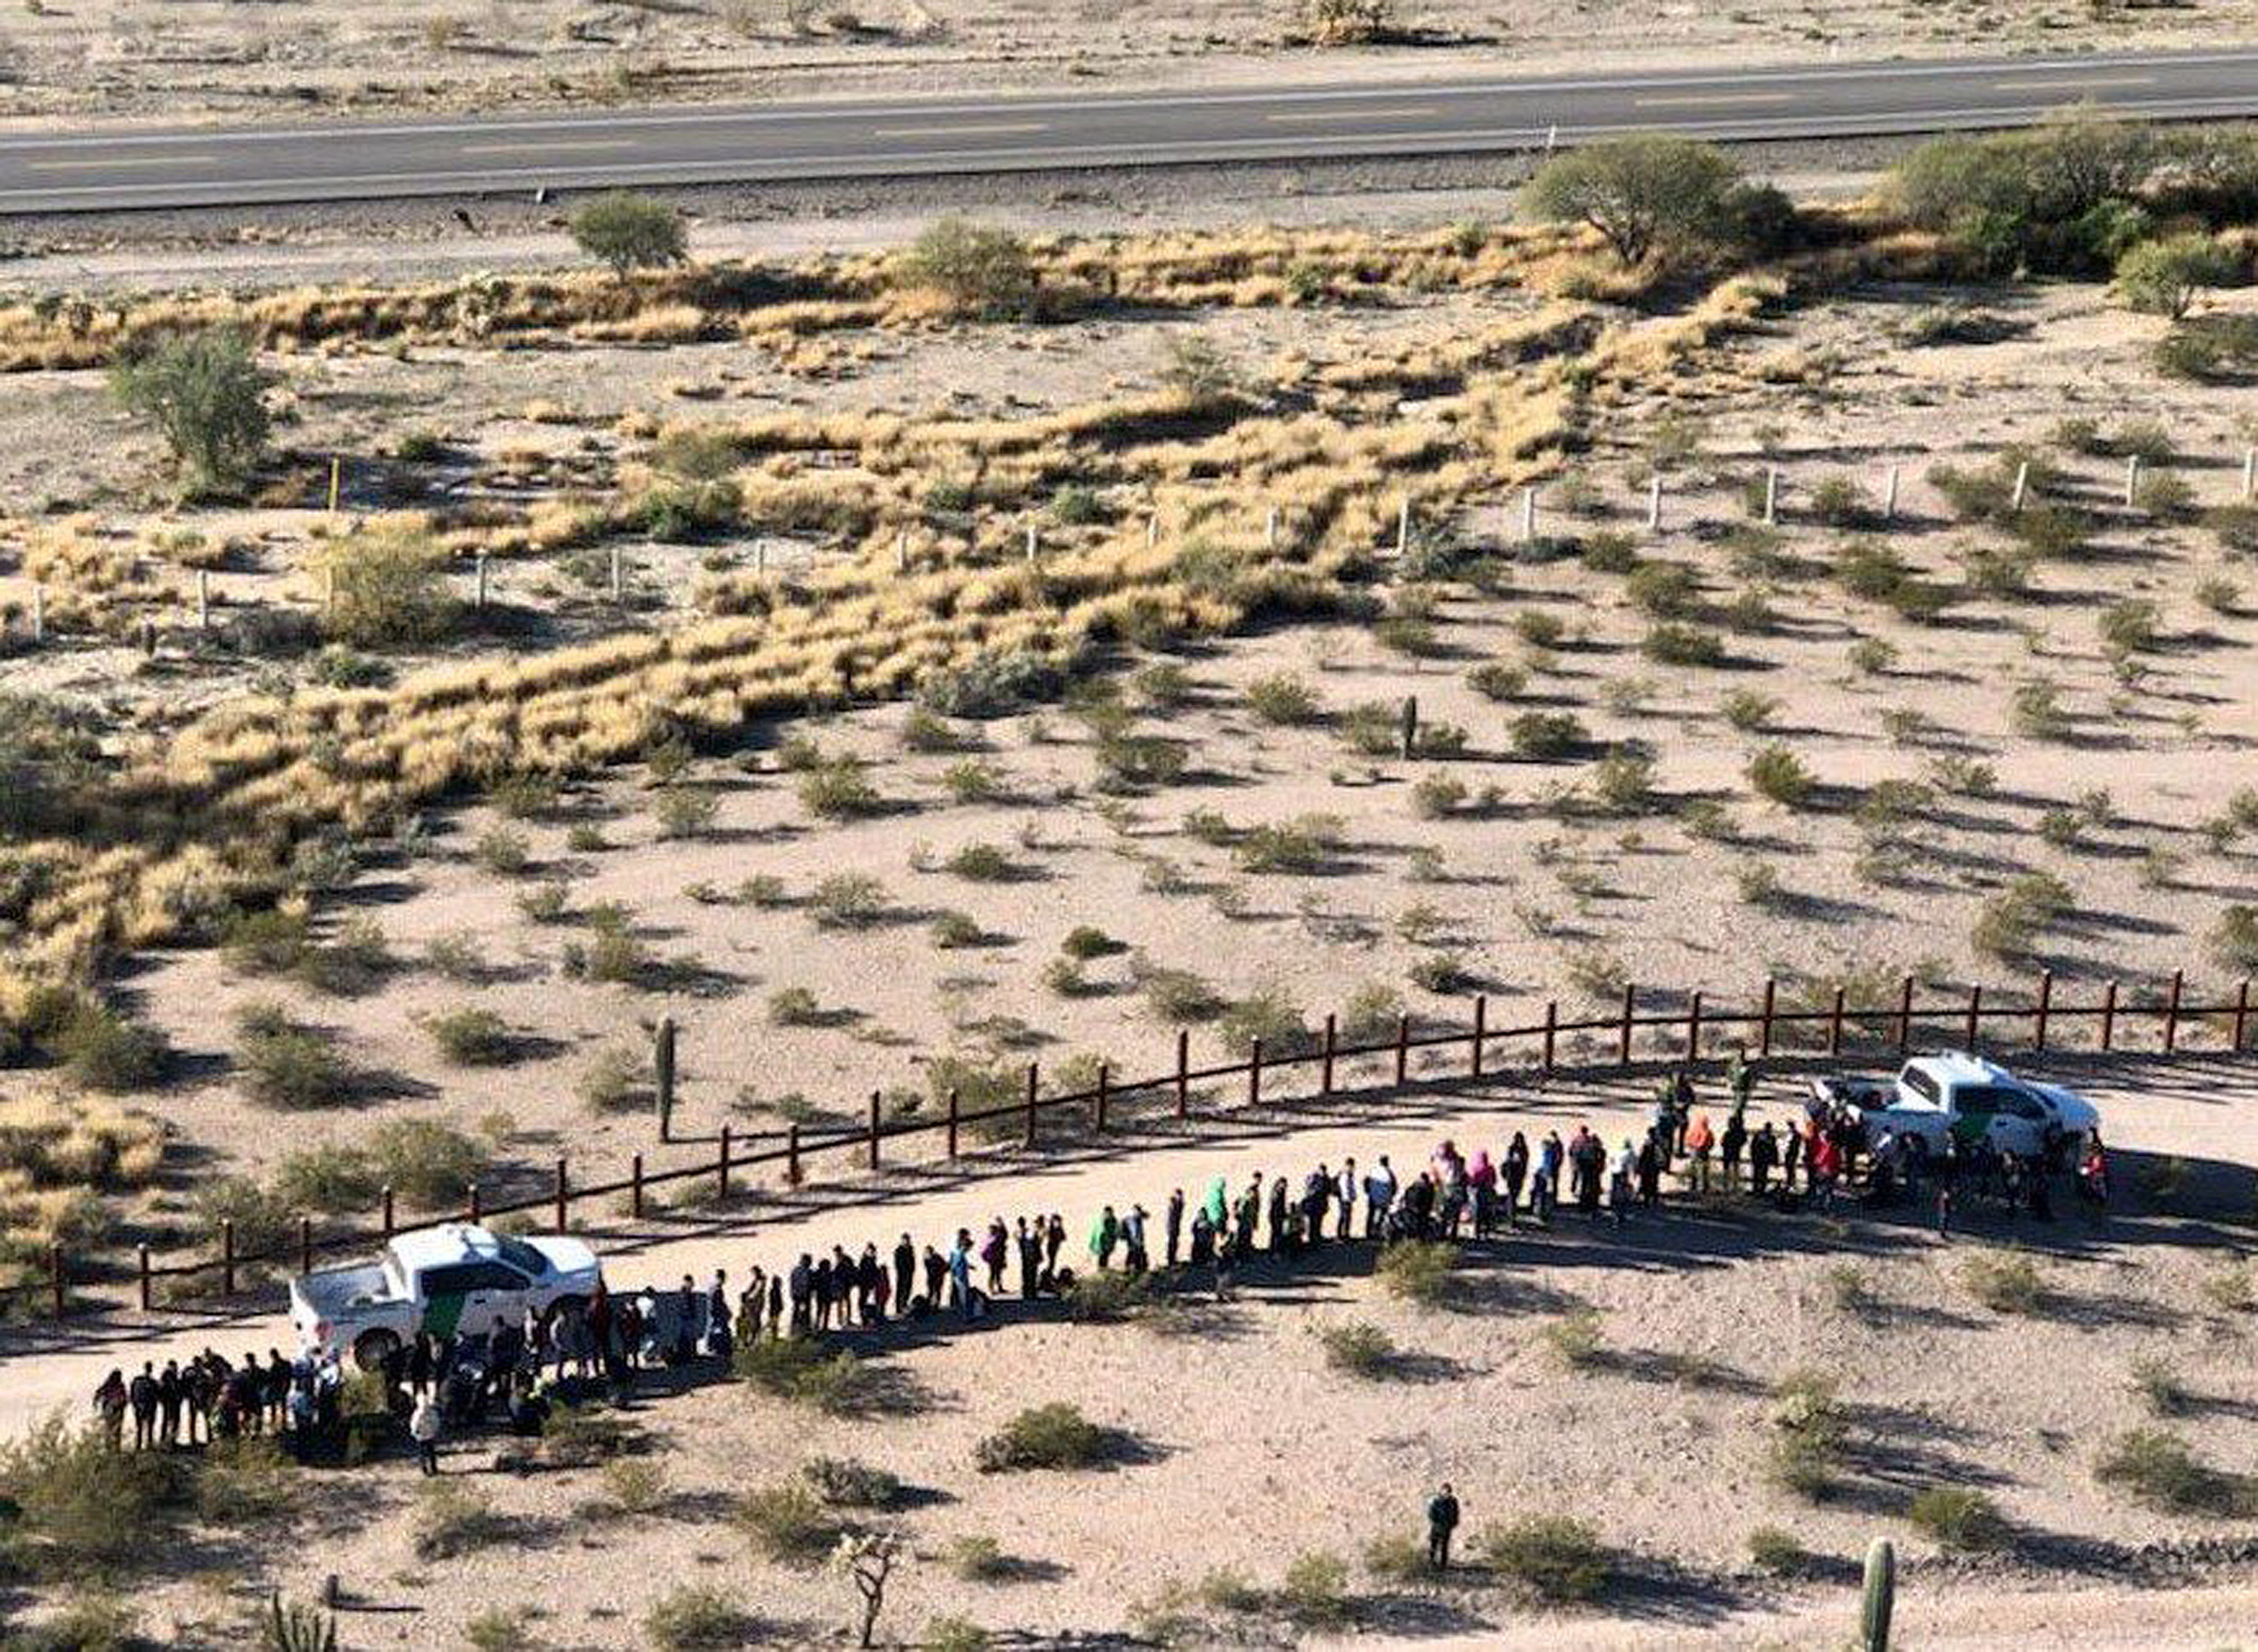 File - In this Thursday, Feb. 7, 2019, file aerial image released by the U.S. Customs and Border Protection, migrants, apprehended after illegally crossing along the U.S.-Mexico border near Lukeville, Ariz., are lined up. Mexico is at the top of the image, beyond the border fence. A border activist charged with helping a pair of migrants with water, food and lodging is set to go on trial in U.S. court in Arizona. Defendant Scott Daniel Warren has argued that his spiritual values compel him to help all people in distress. The trial is scheduled to begin Wednesday, May 29, 2019, in Tucson, with the 36-year-old Warren charged with harboring migrants and conspiring to transport and harbor two Mexican men found with him who were in the U.S. illegally. (U.S. Customs and Border Protection via AP, File)